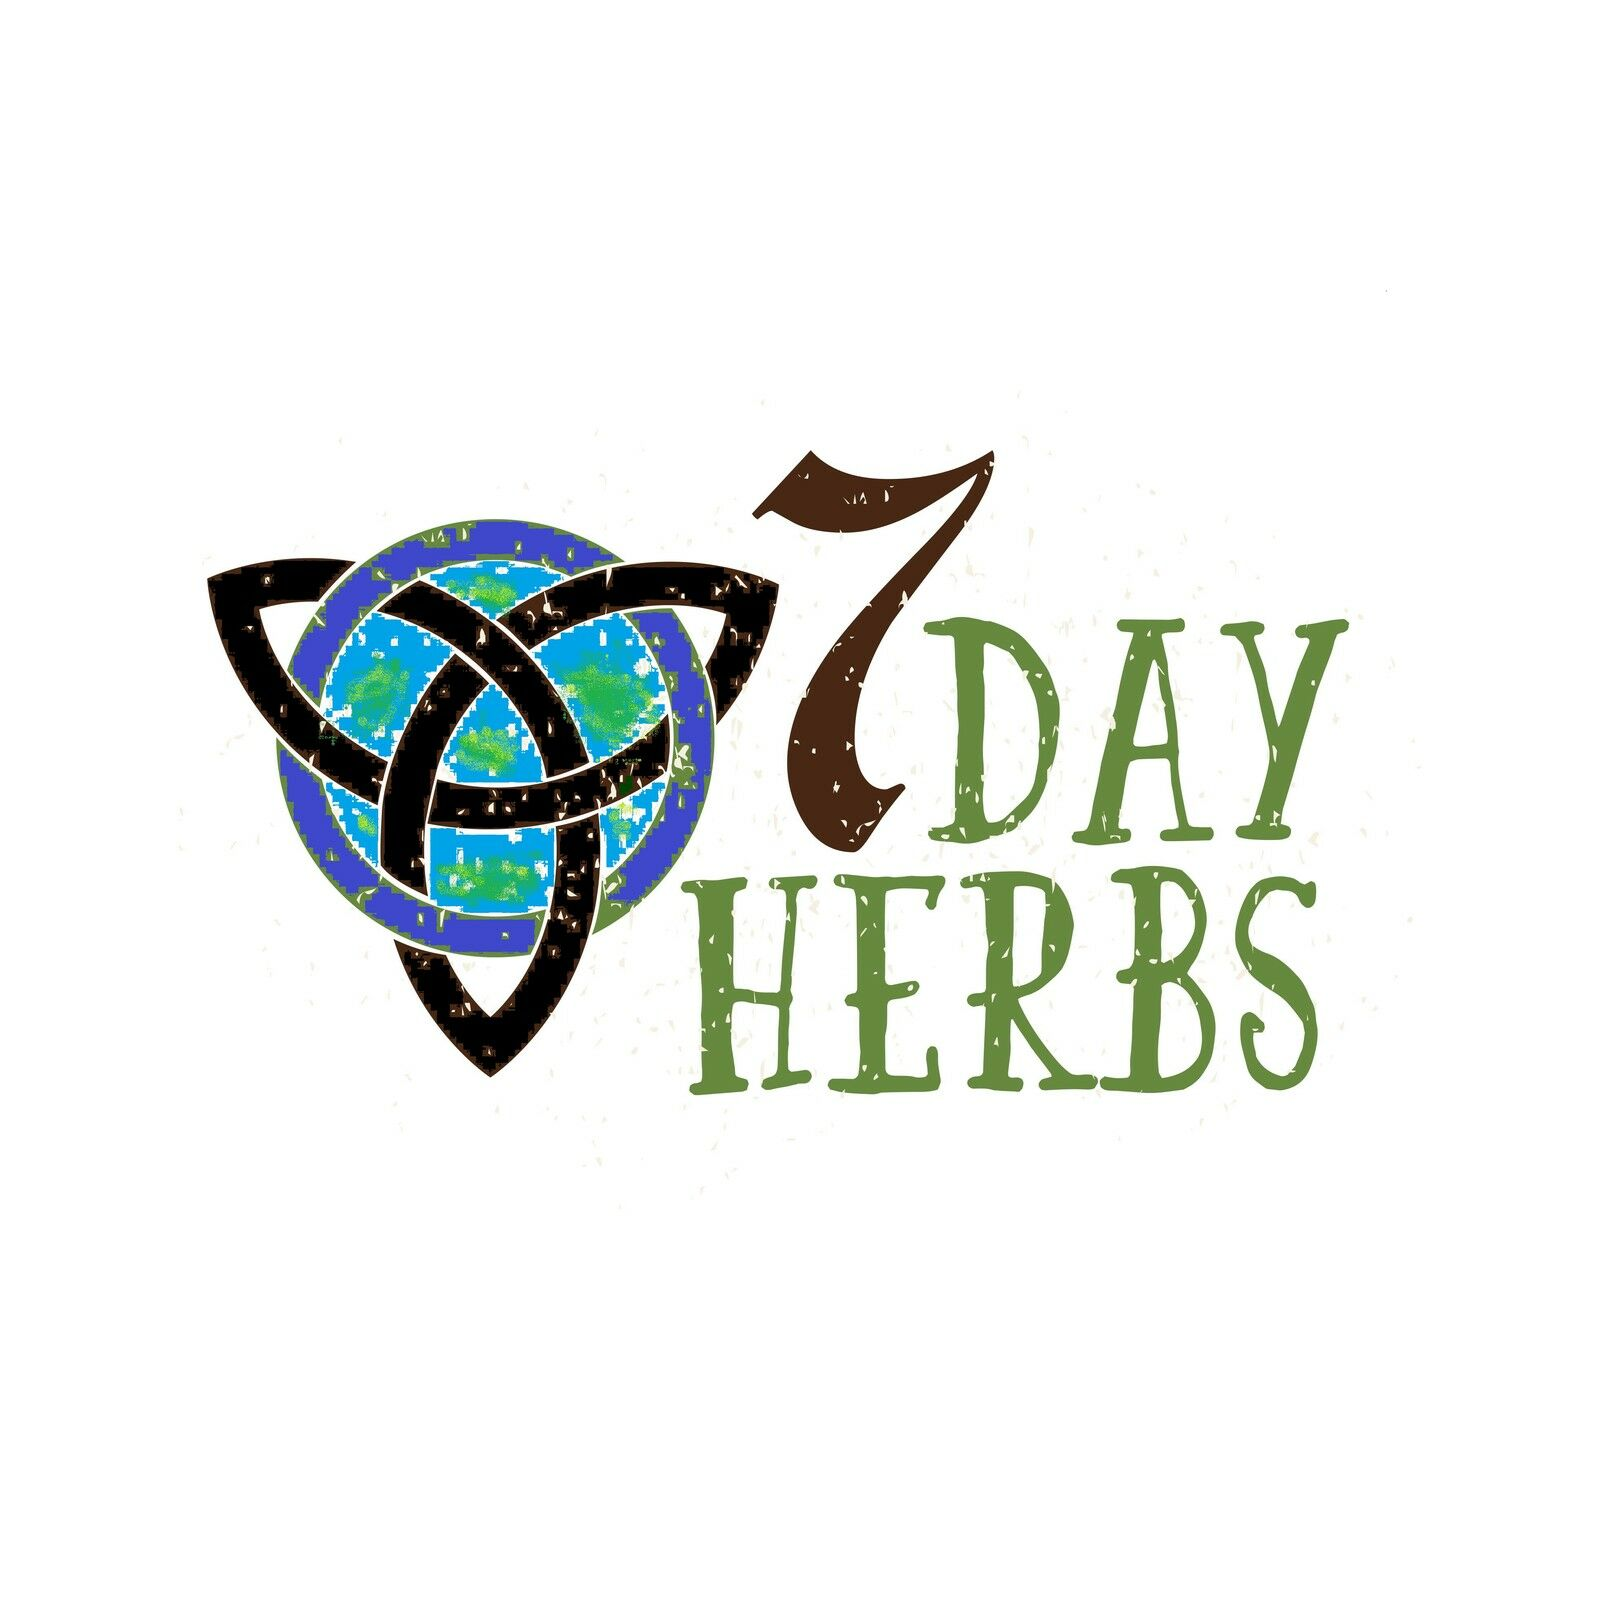 7 DAY HERBS